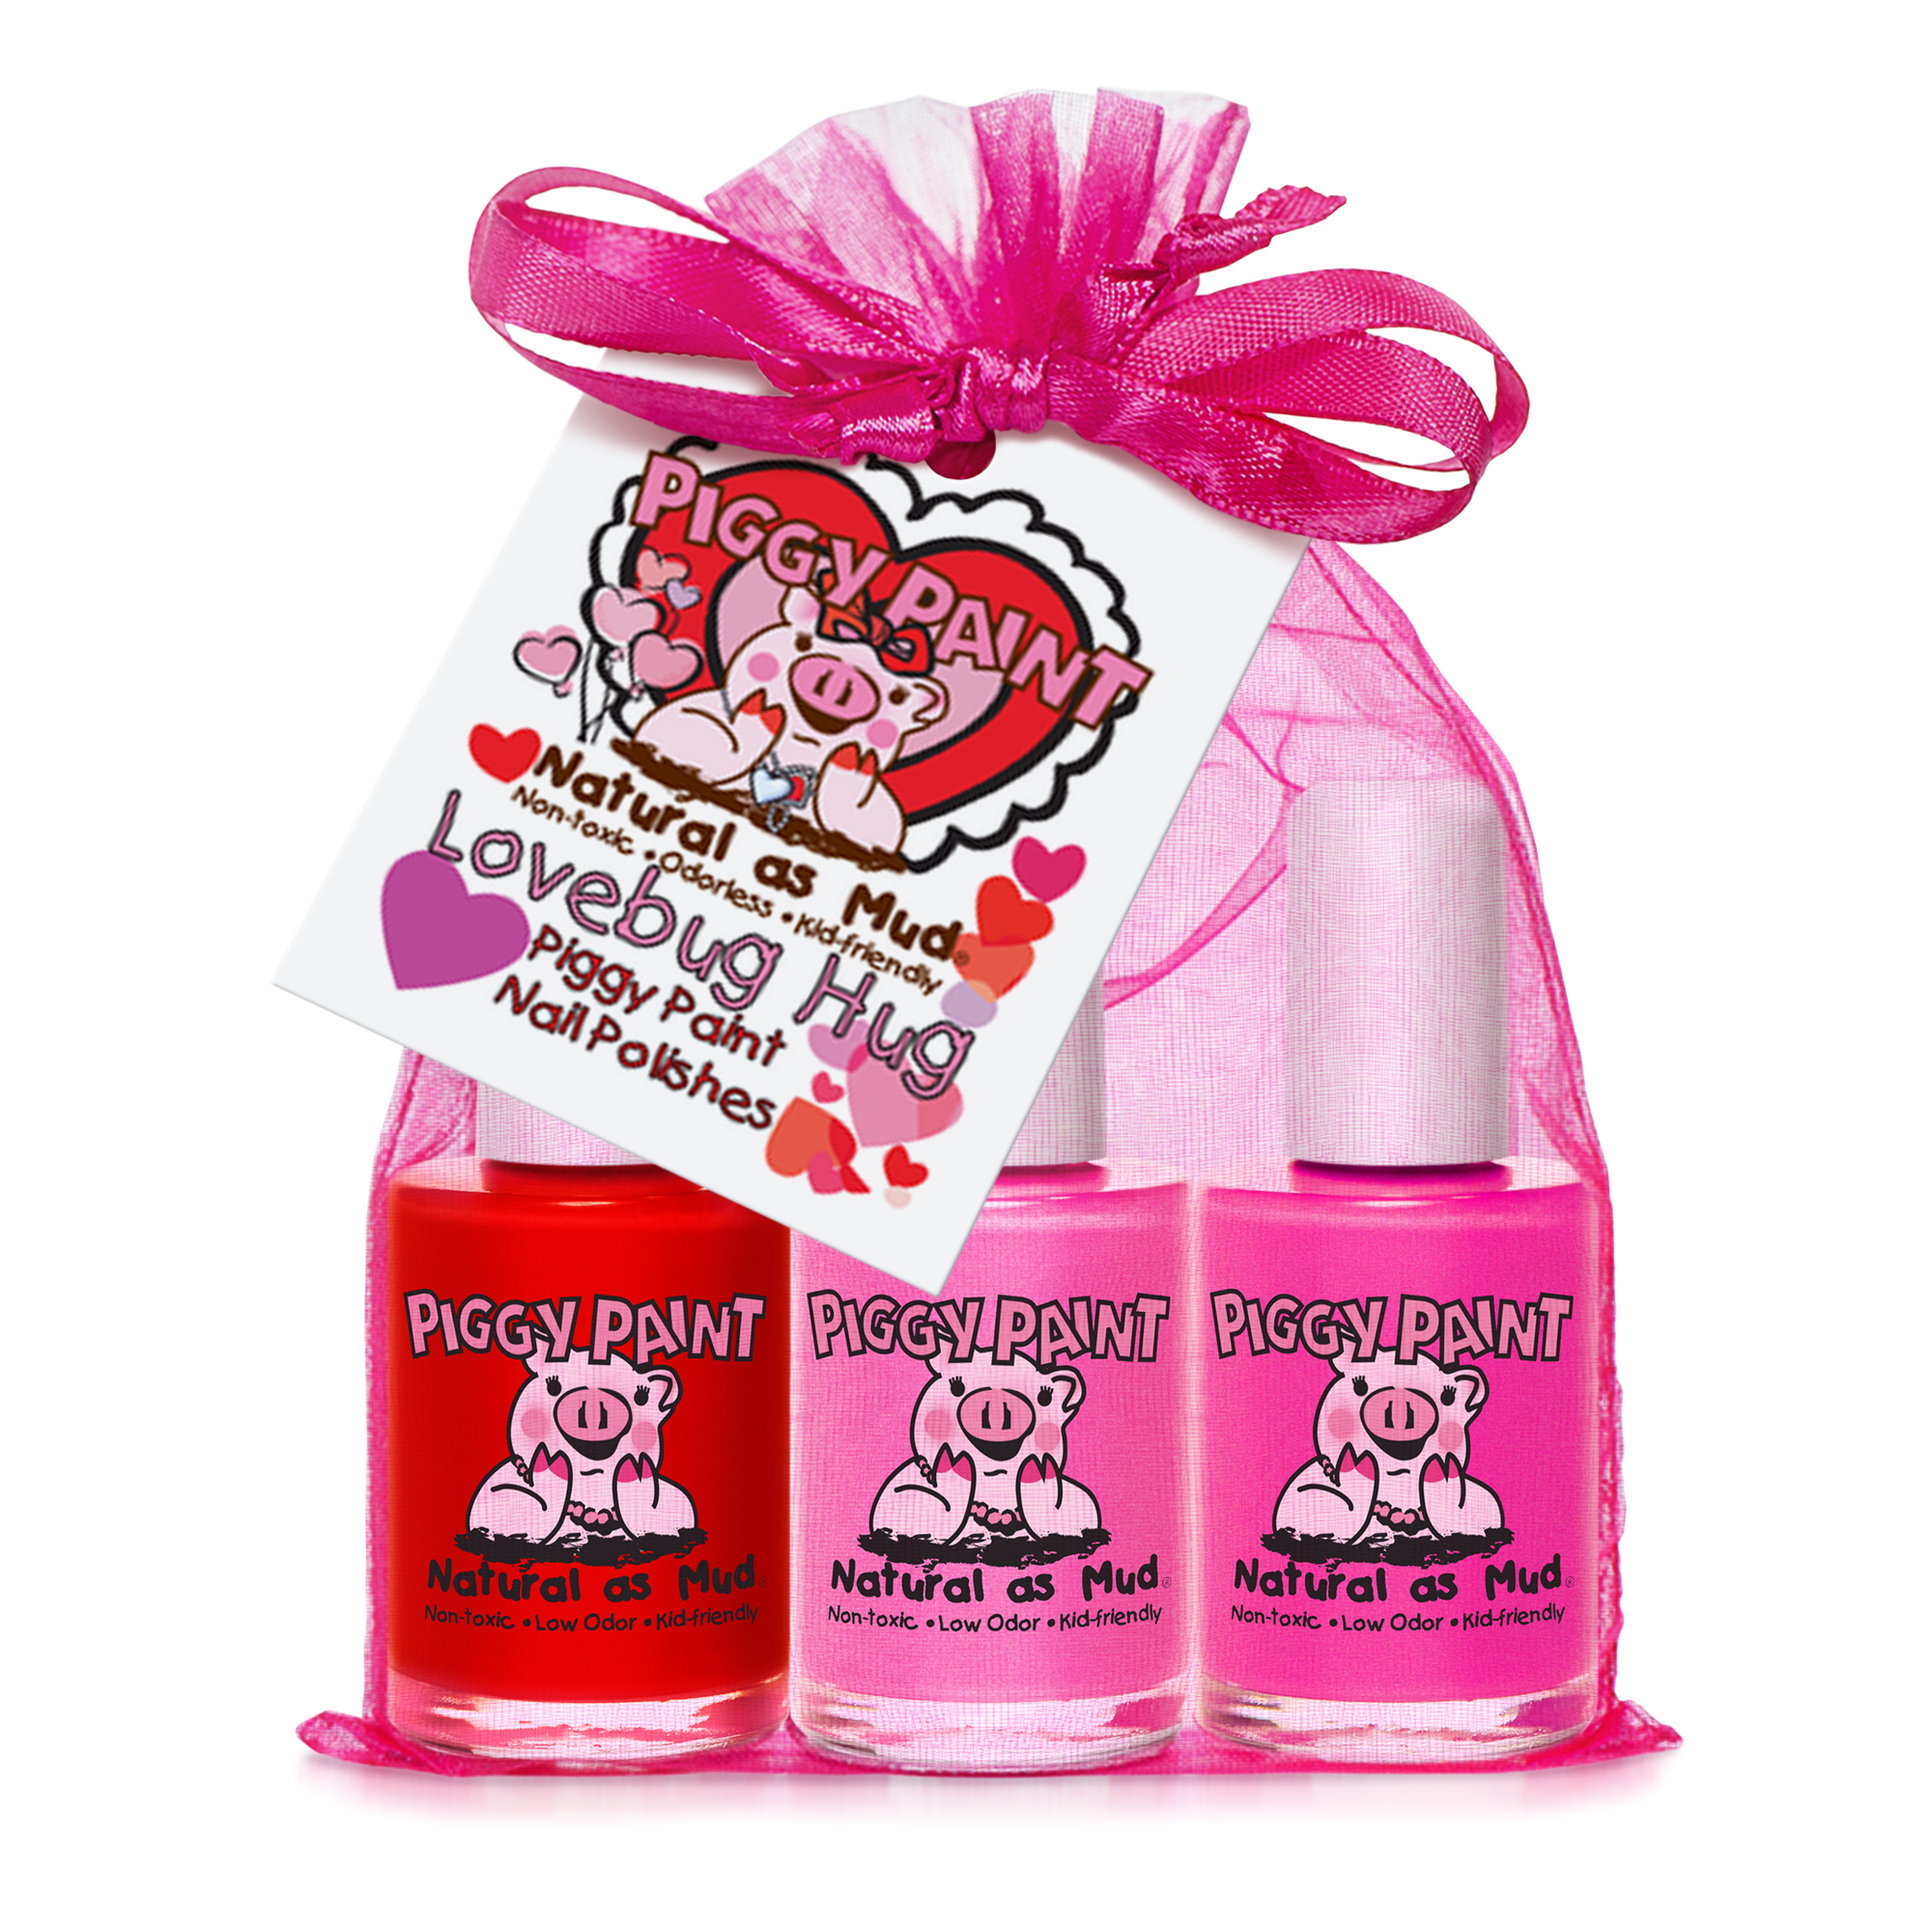 Piggy Paint Set Lovebug Hug